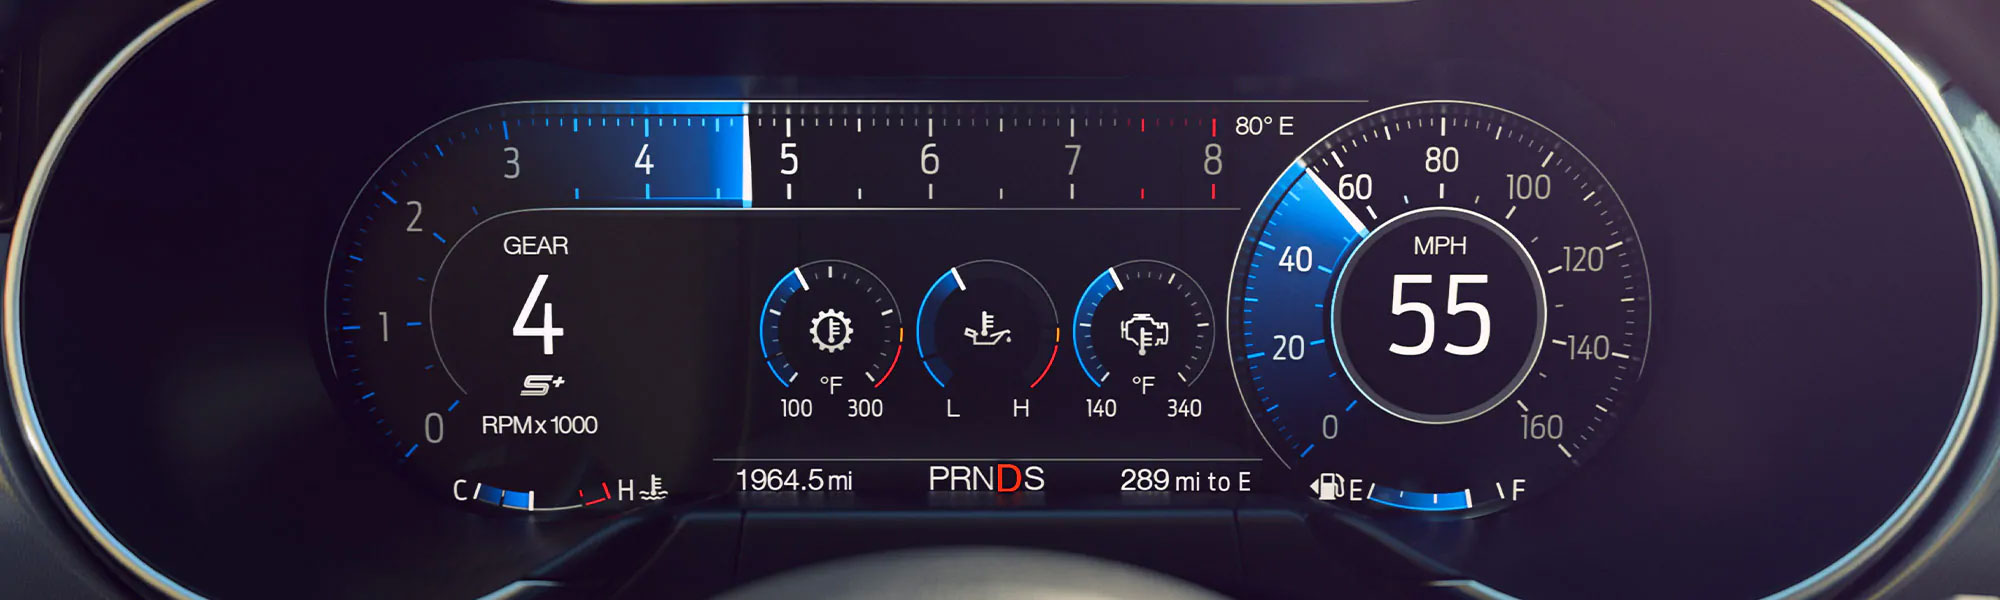 New Ford Mustang Dashboard